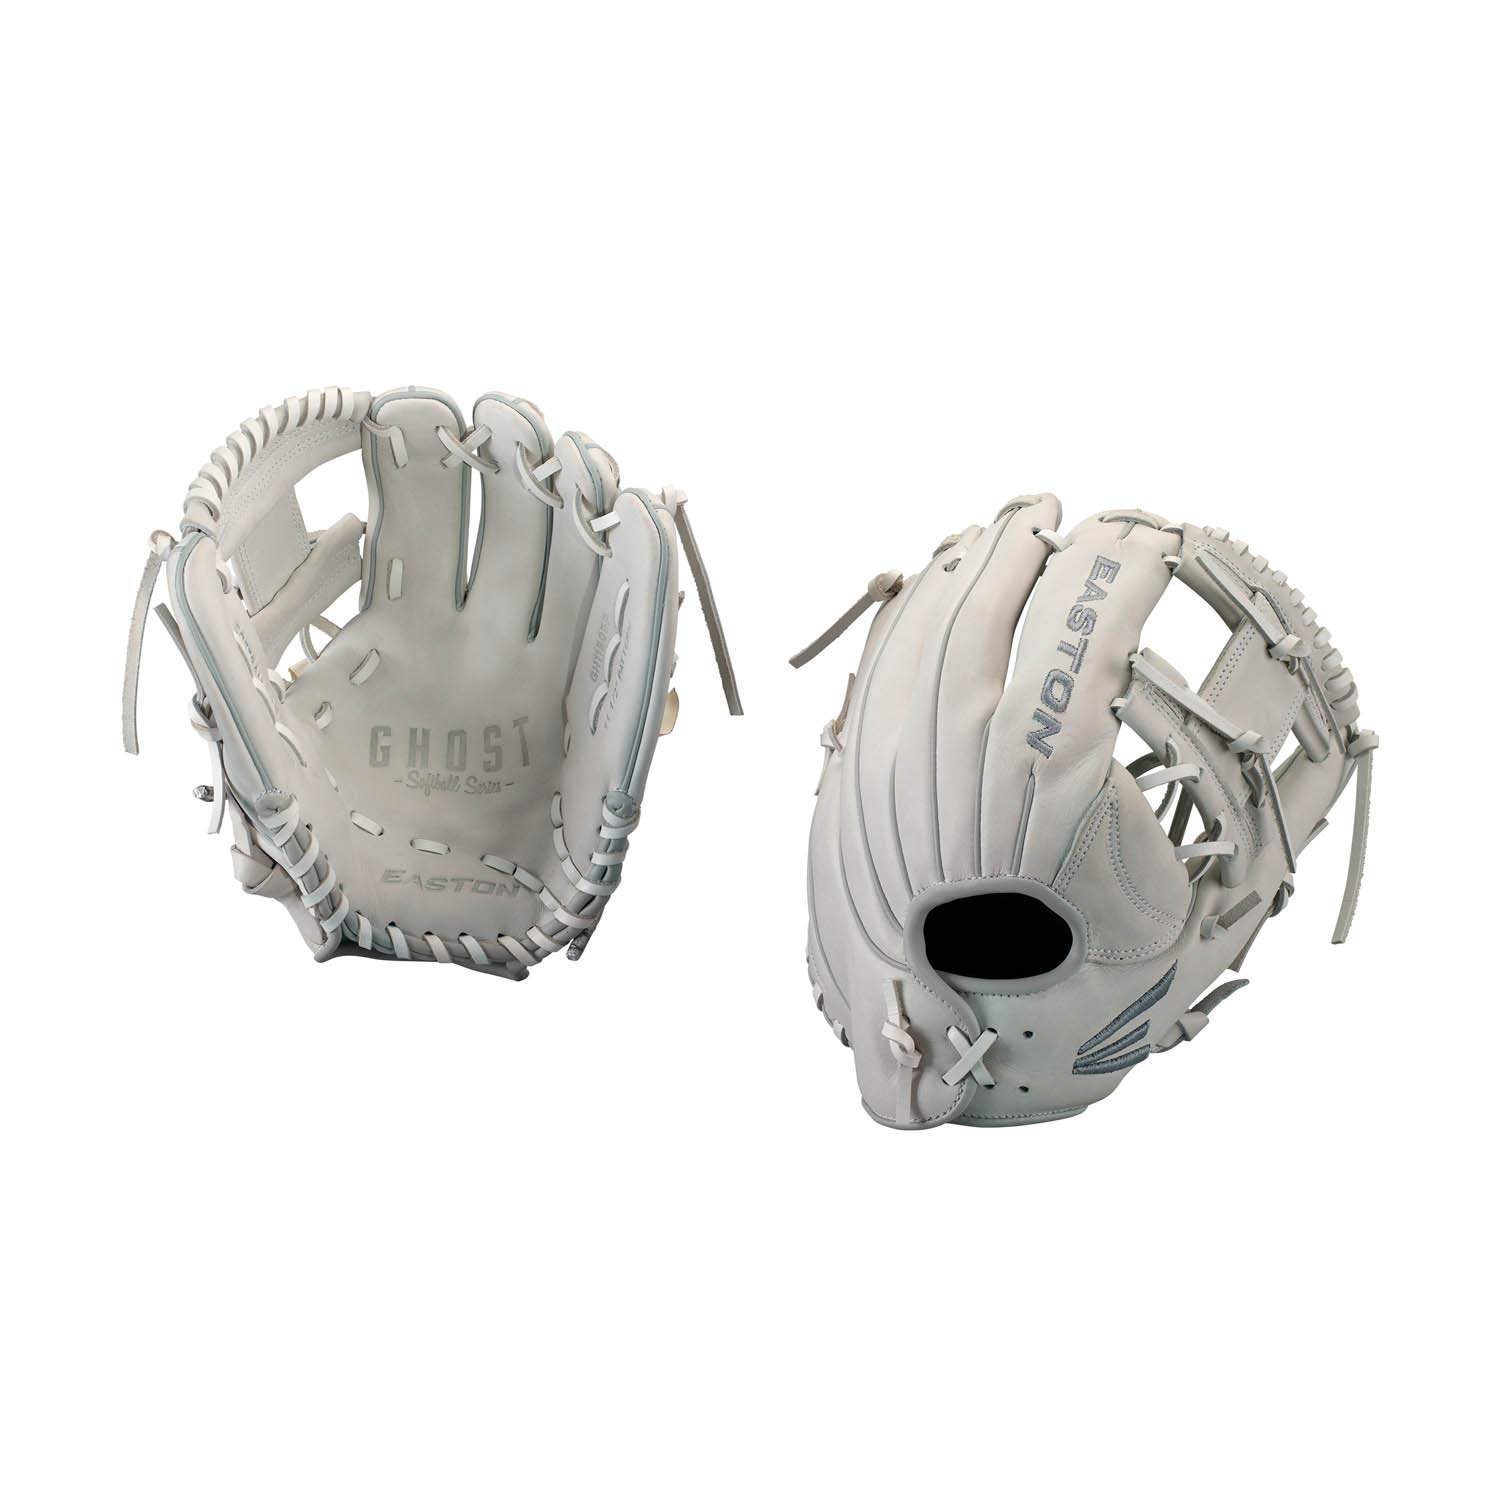 【特価】 イーストンゴーストFastpitchシリーズ野球グローブ Catcher Grey, B07FMNCMQF Grey, Catcher Mitt|34インチ Grey, Catcher Mitt Mitt, 西頸城郡:d341a791 --- a0267596.xsph.ru